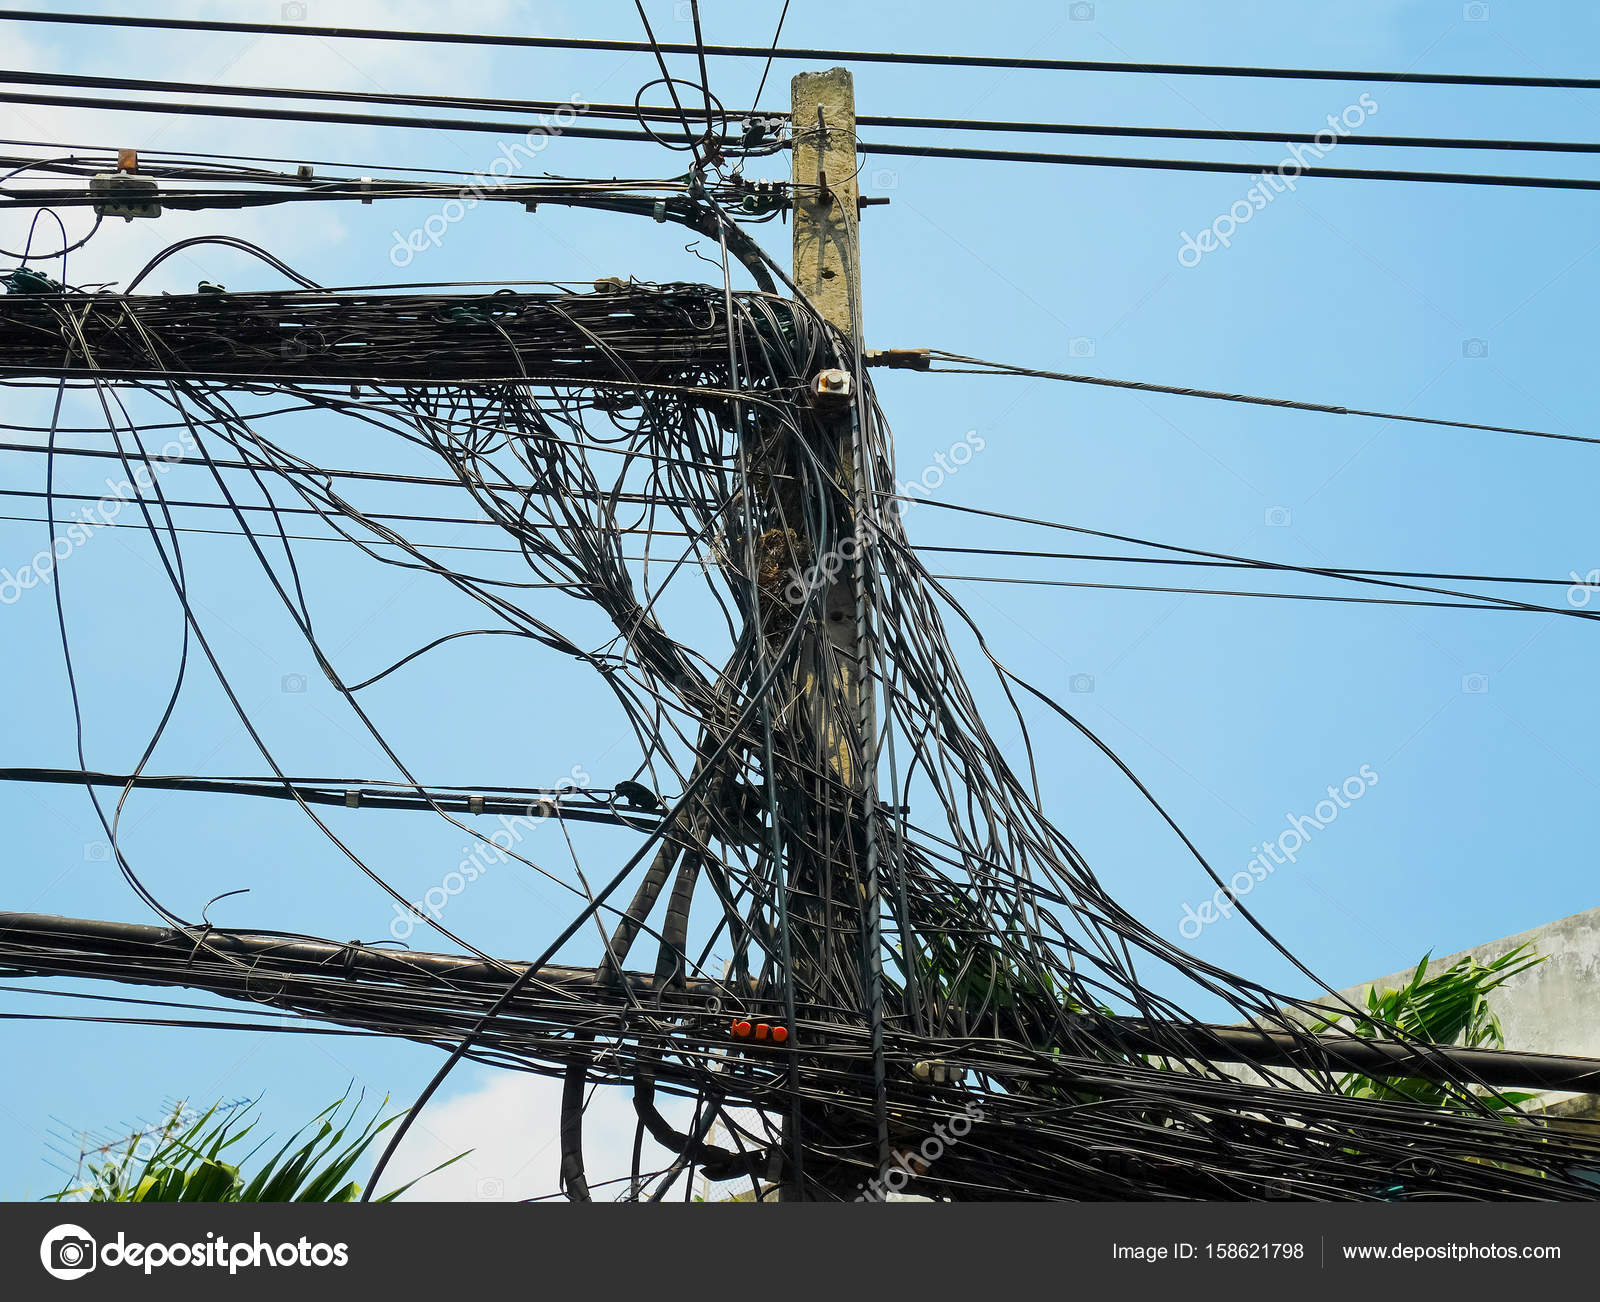 Utility pole supporting messy wires — Stock Photo © p_saranya #158621798